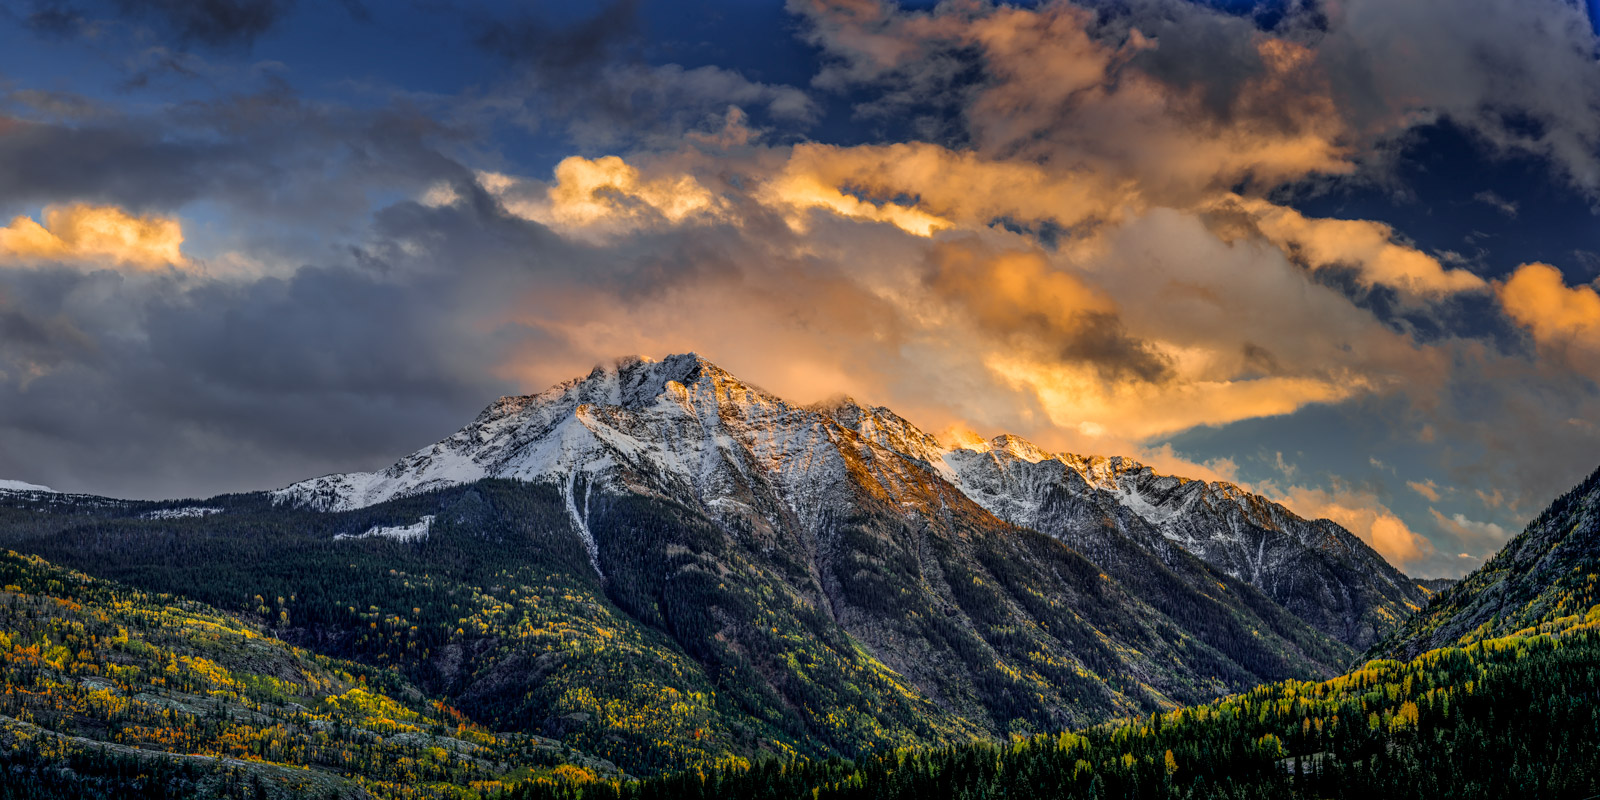 Colorado, Mountain, Fall, Color, Snow Covered, limited edition, photograph, fine art, landscape, photo